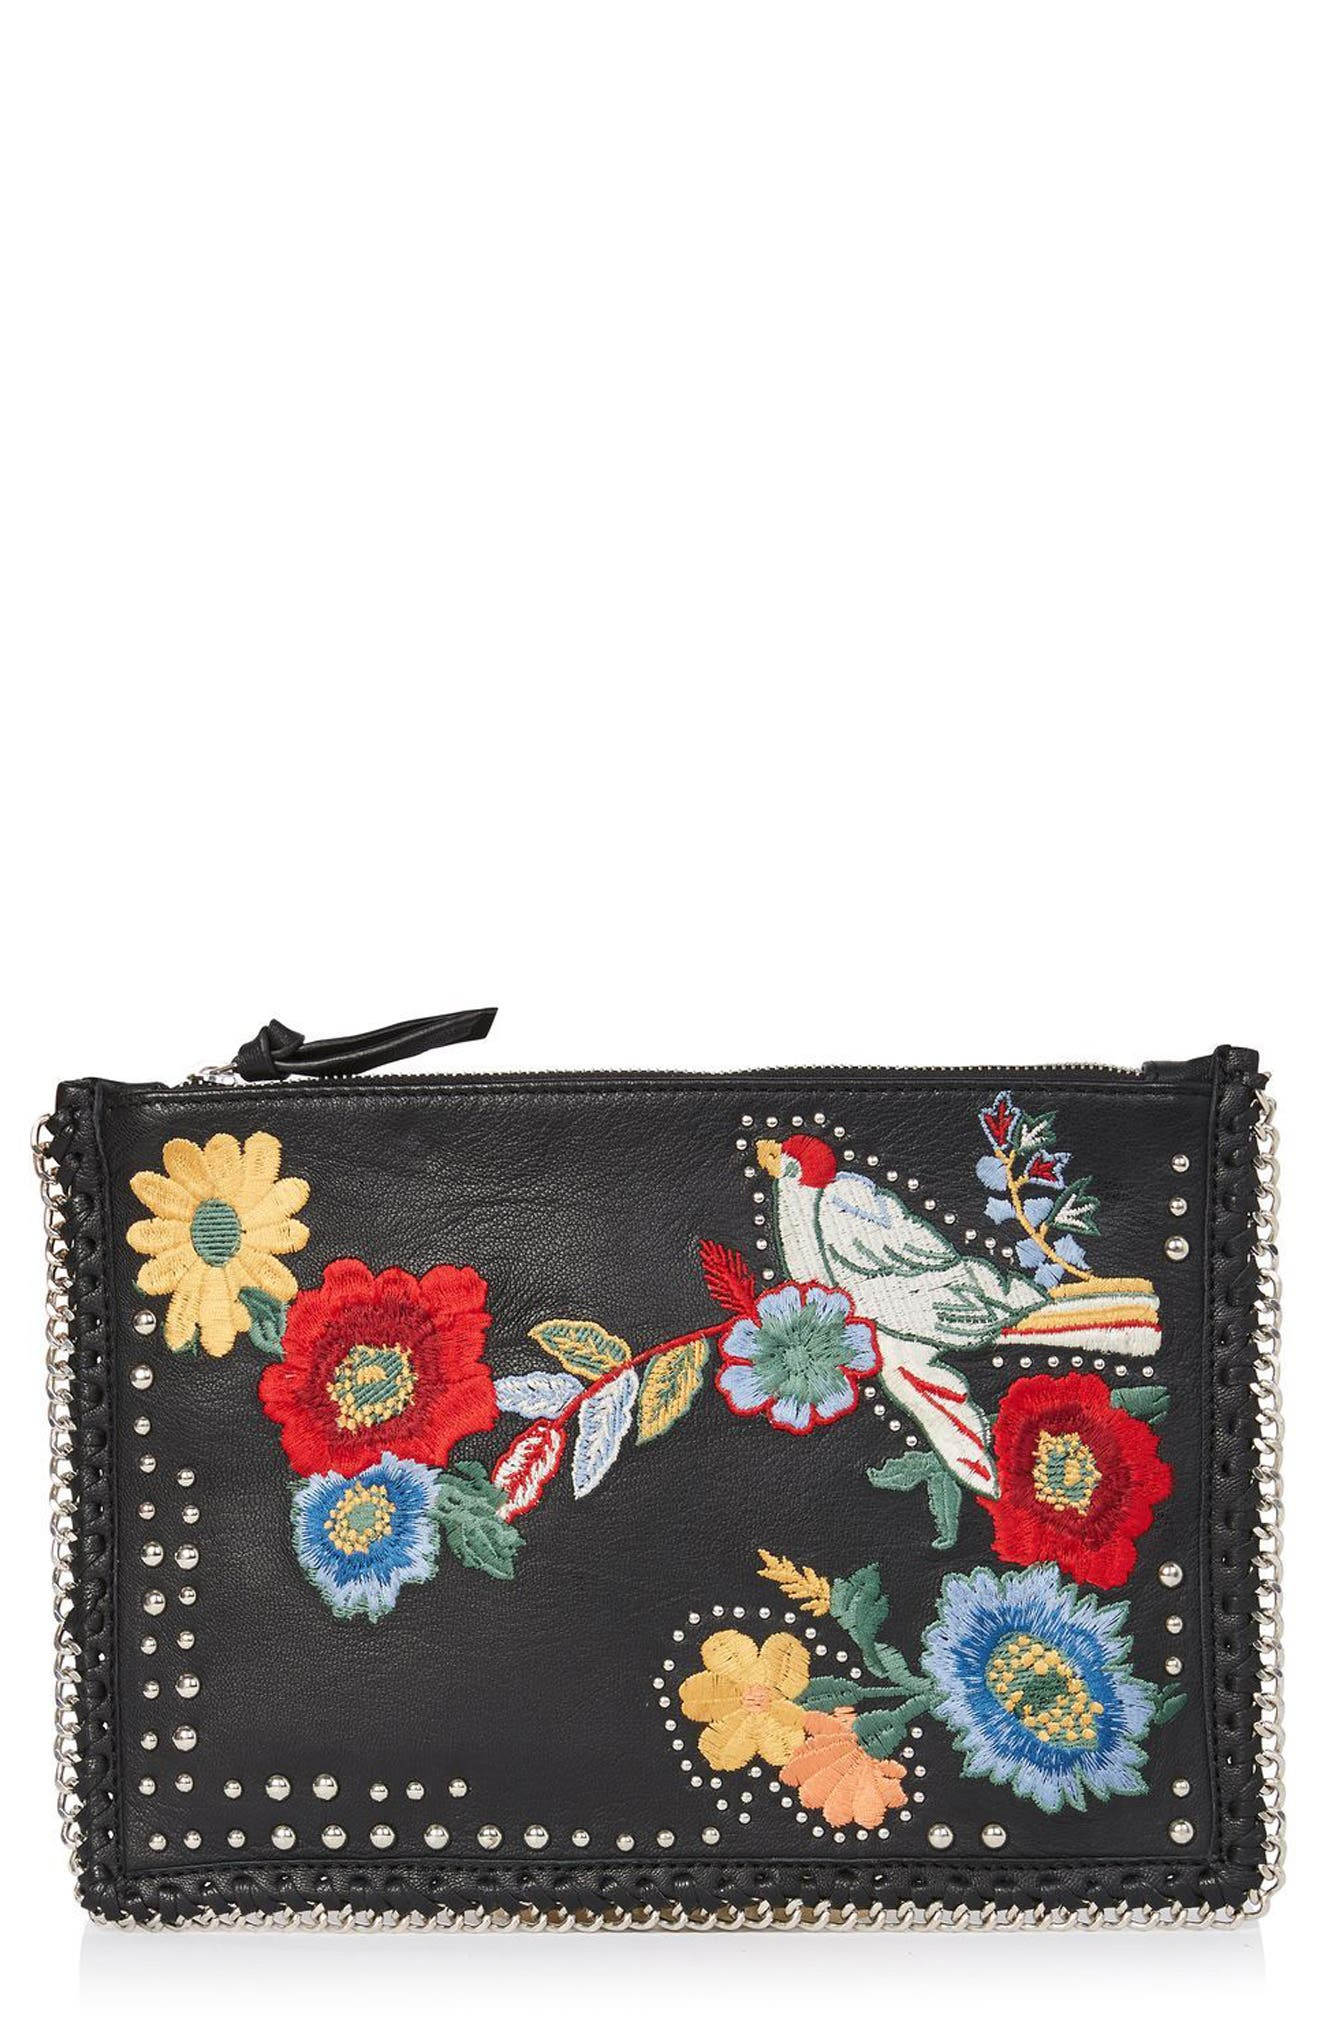 Alternate Image 1 Selected - Topshop Oto Embroidered Leather Crossbody Bag